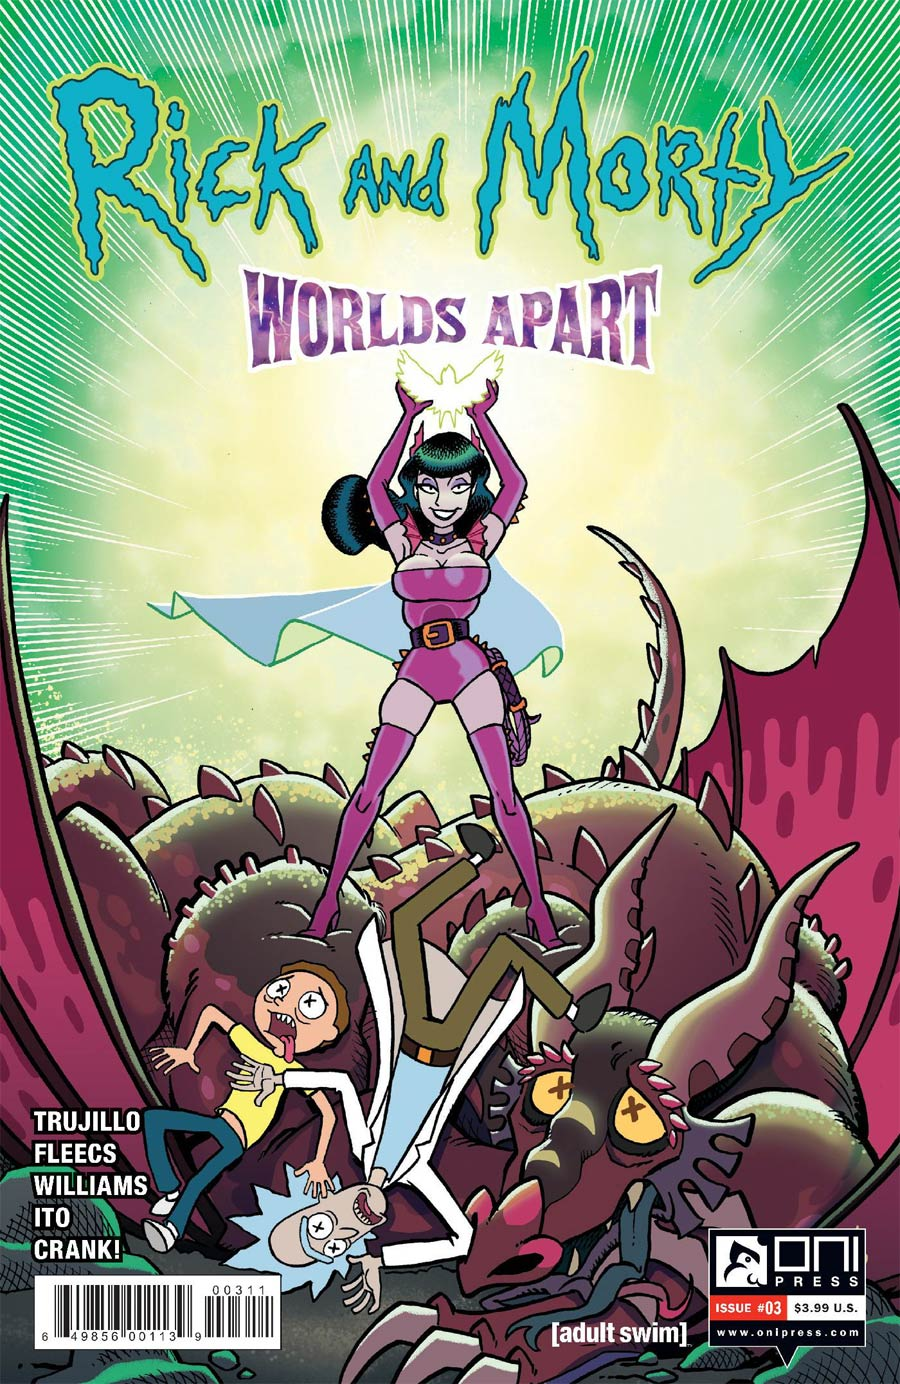 Rick And Morty Worlds Apart #3 Cover A Regular Tony Fleecs Cover